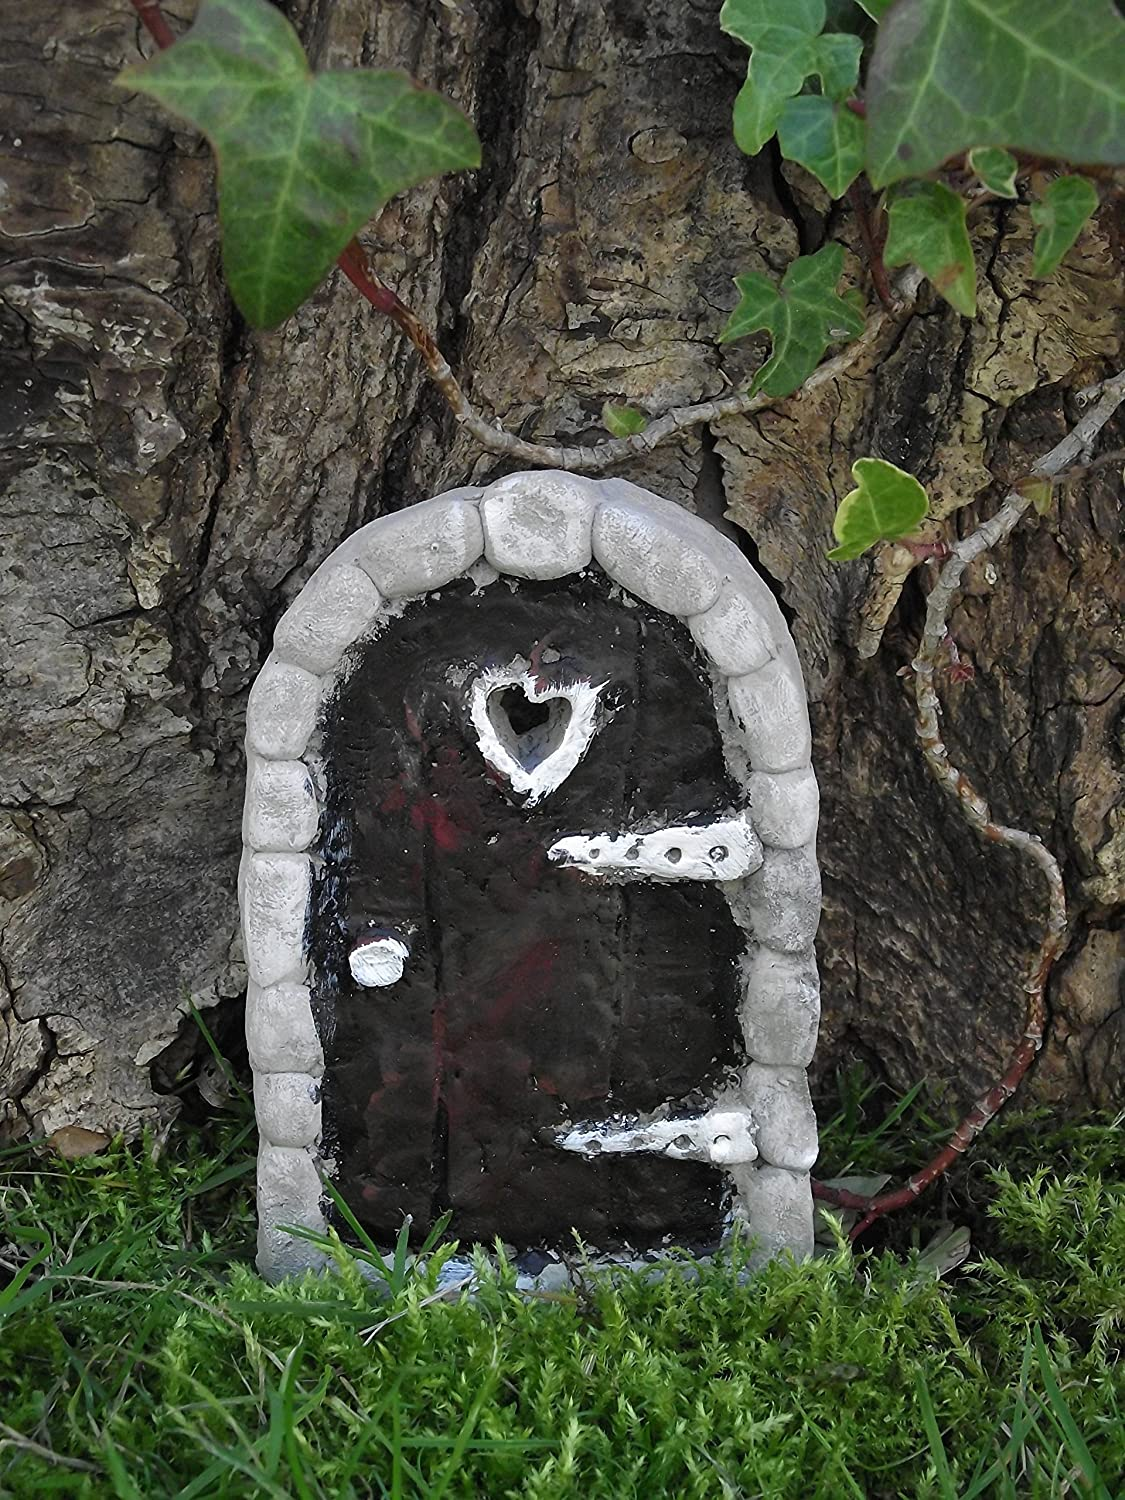 Stone Fairy Door Arched Design with Free Bottle of Magical Dust - Hand Cast & Hand Finished for your Fairy Garden Secret Fairy Door